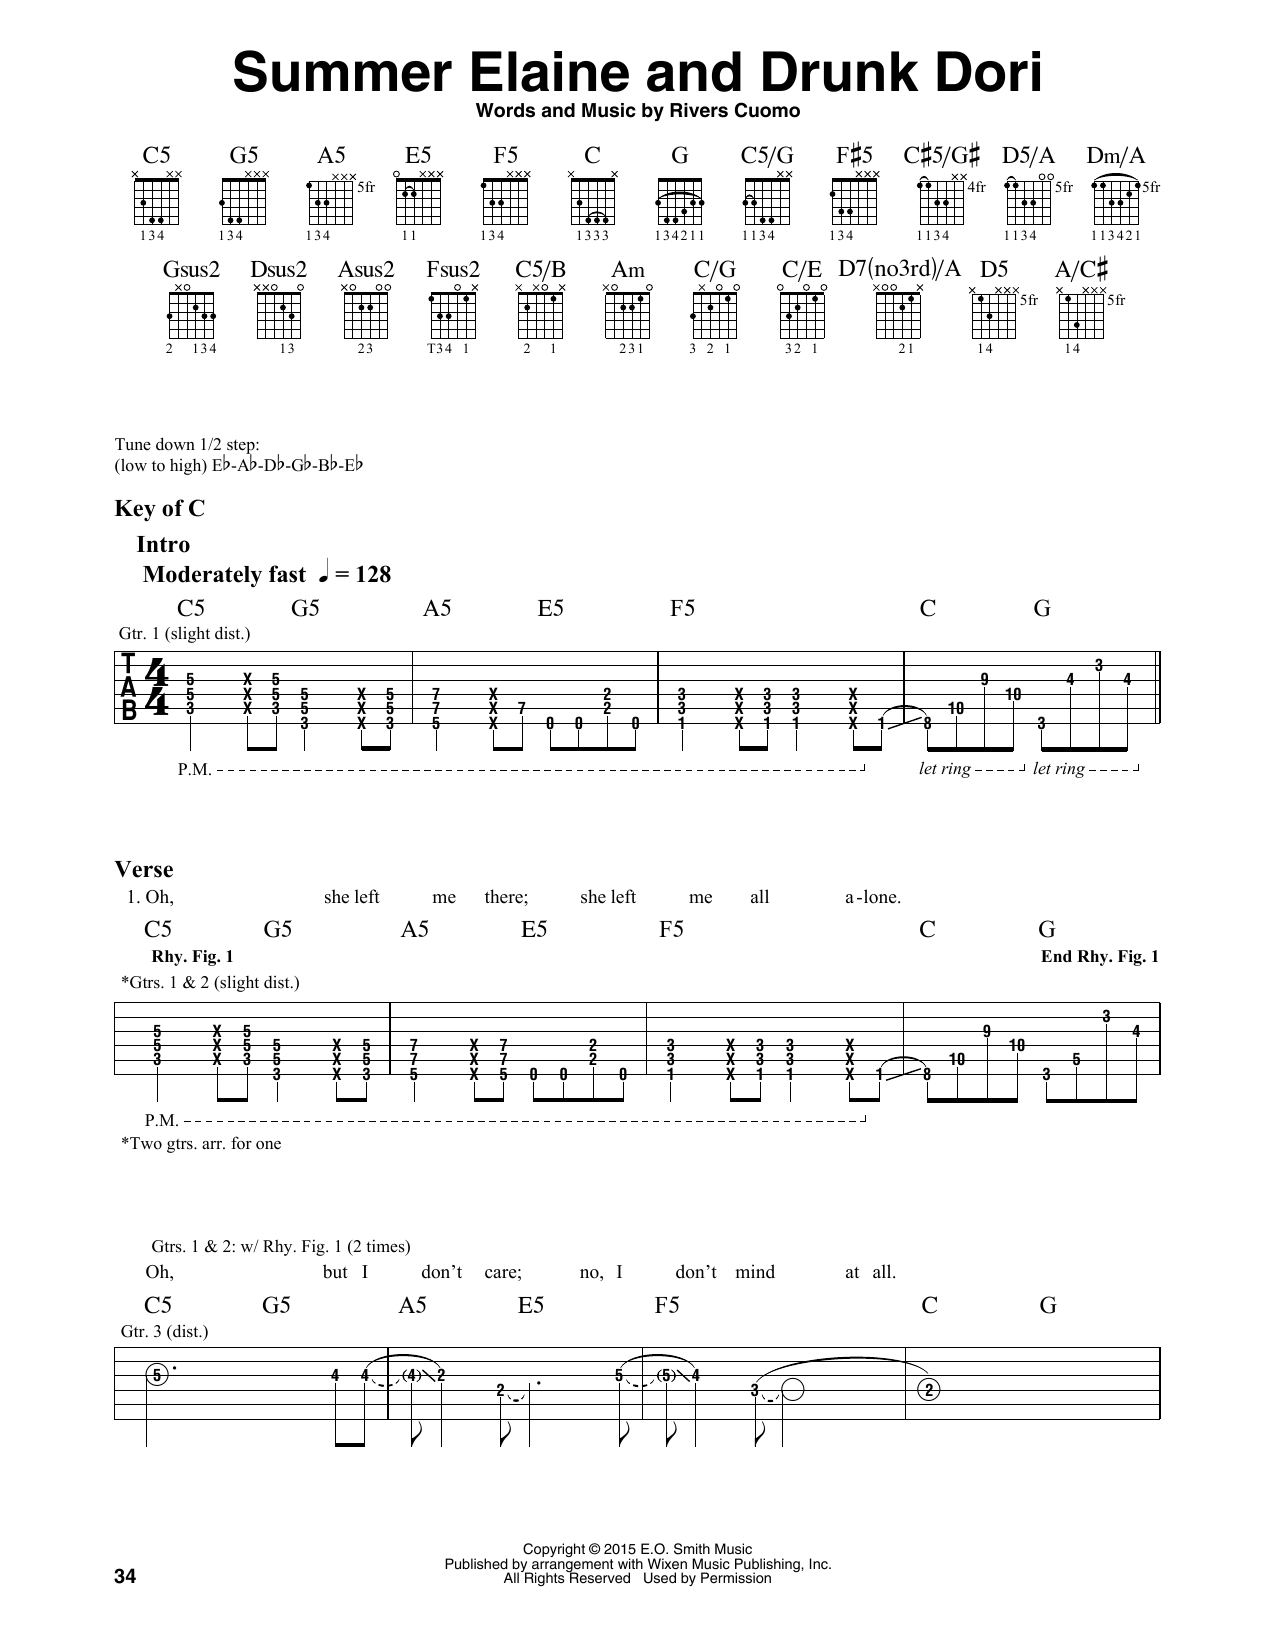 Weezer Summer Elaine And Drunk Dori sheet music notes and chords